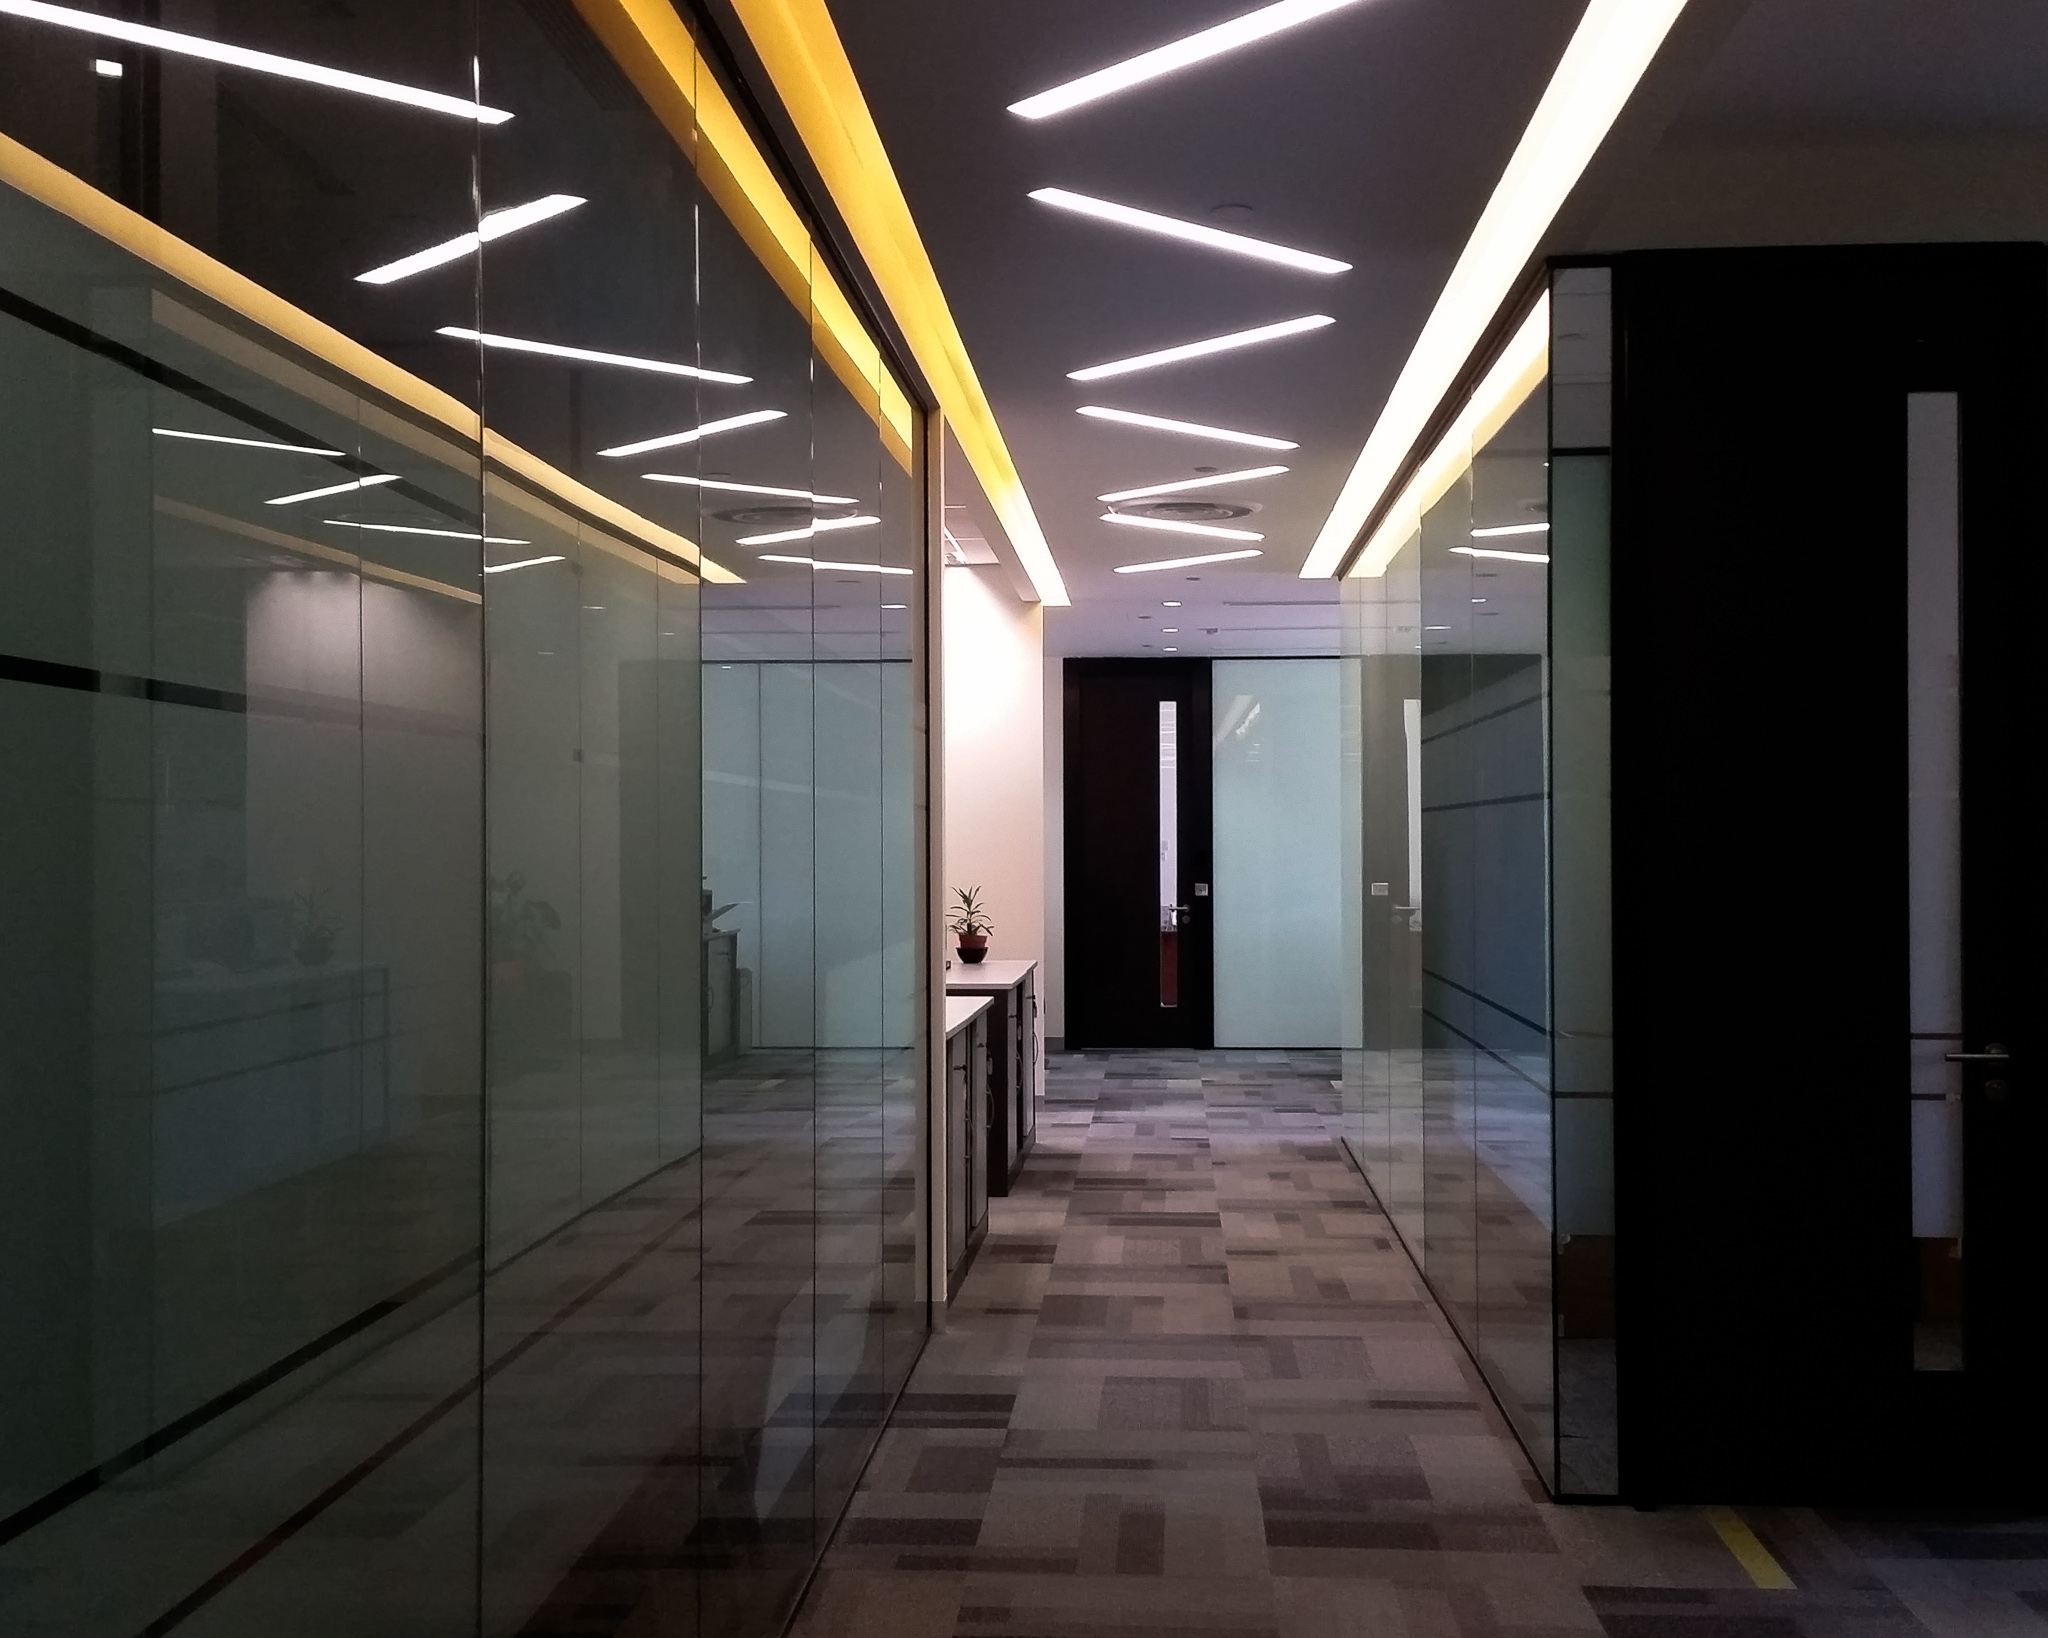 NTUC office Club. we are a Interior design and build firm based in Singapore, Malaysia and China.